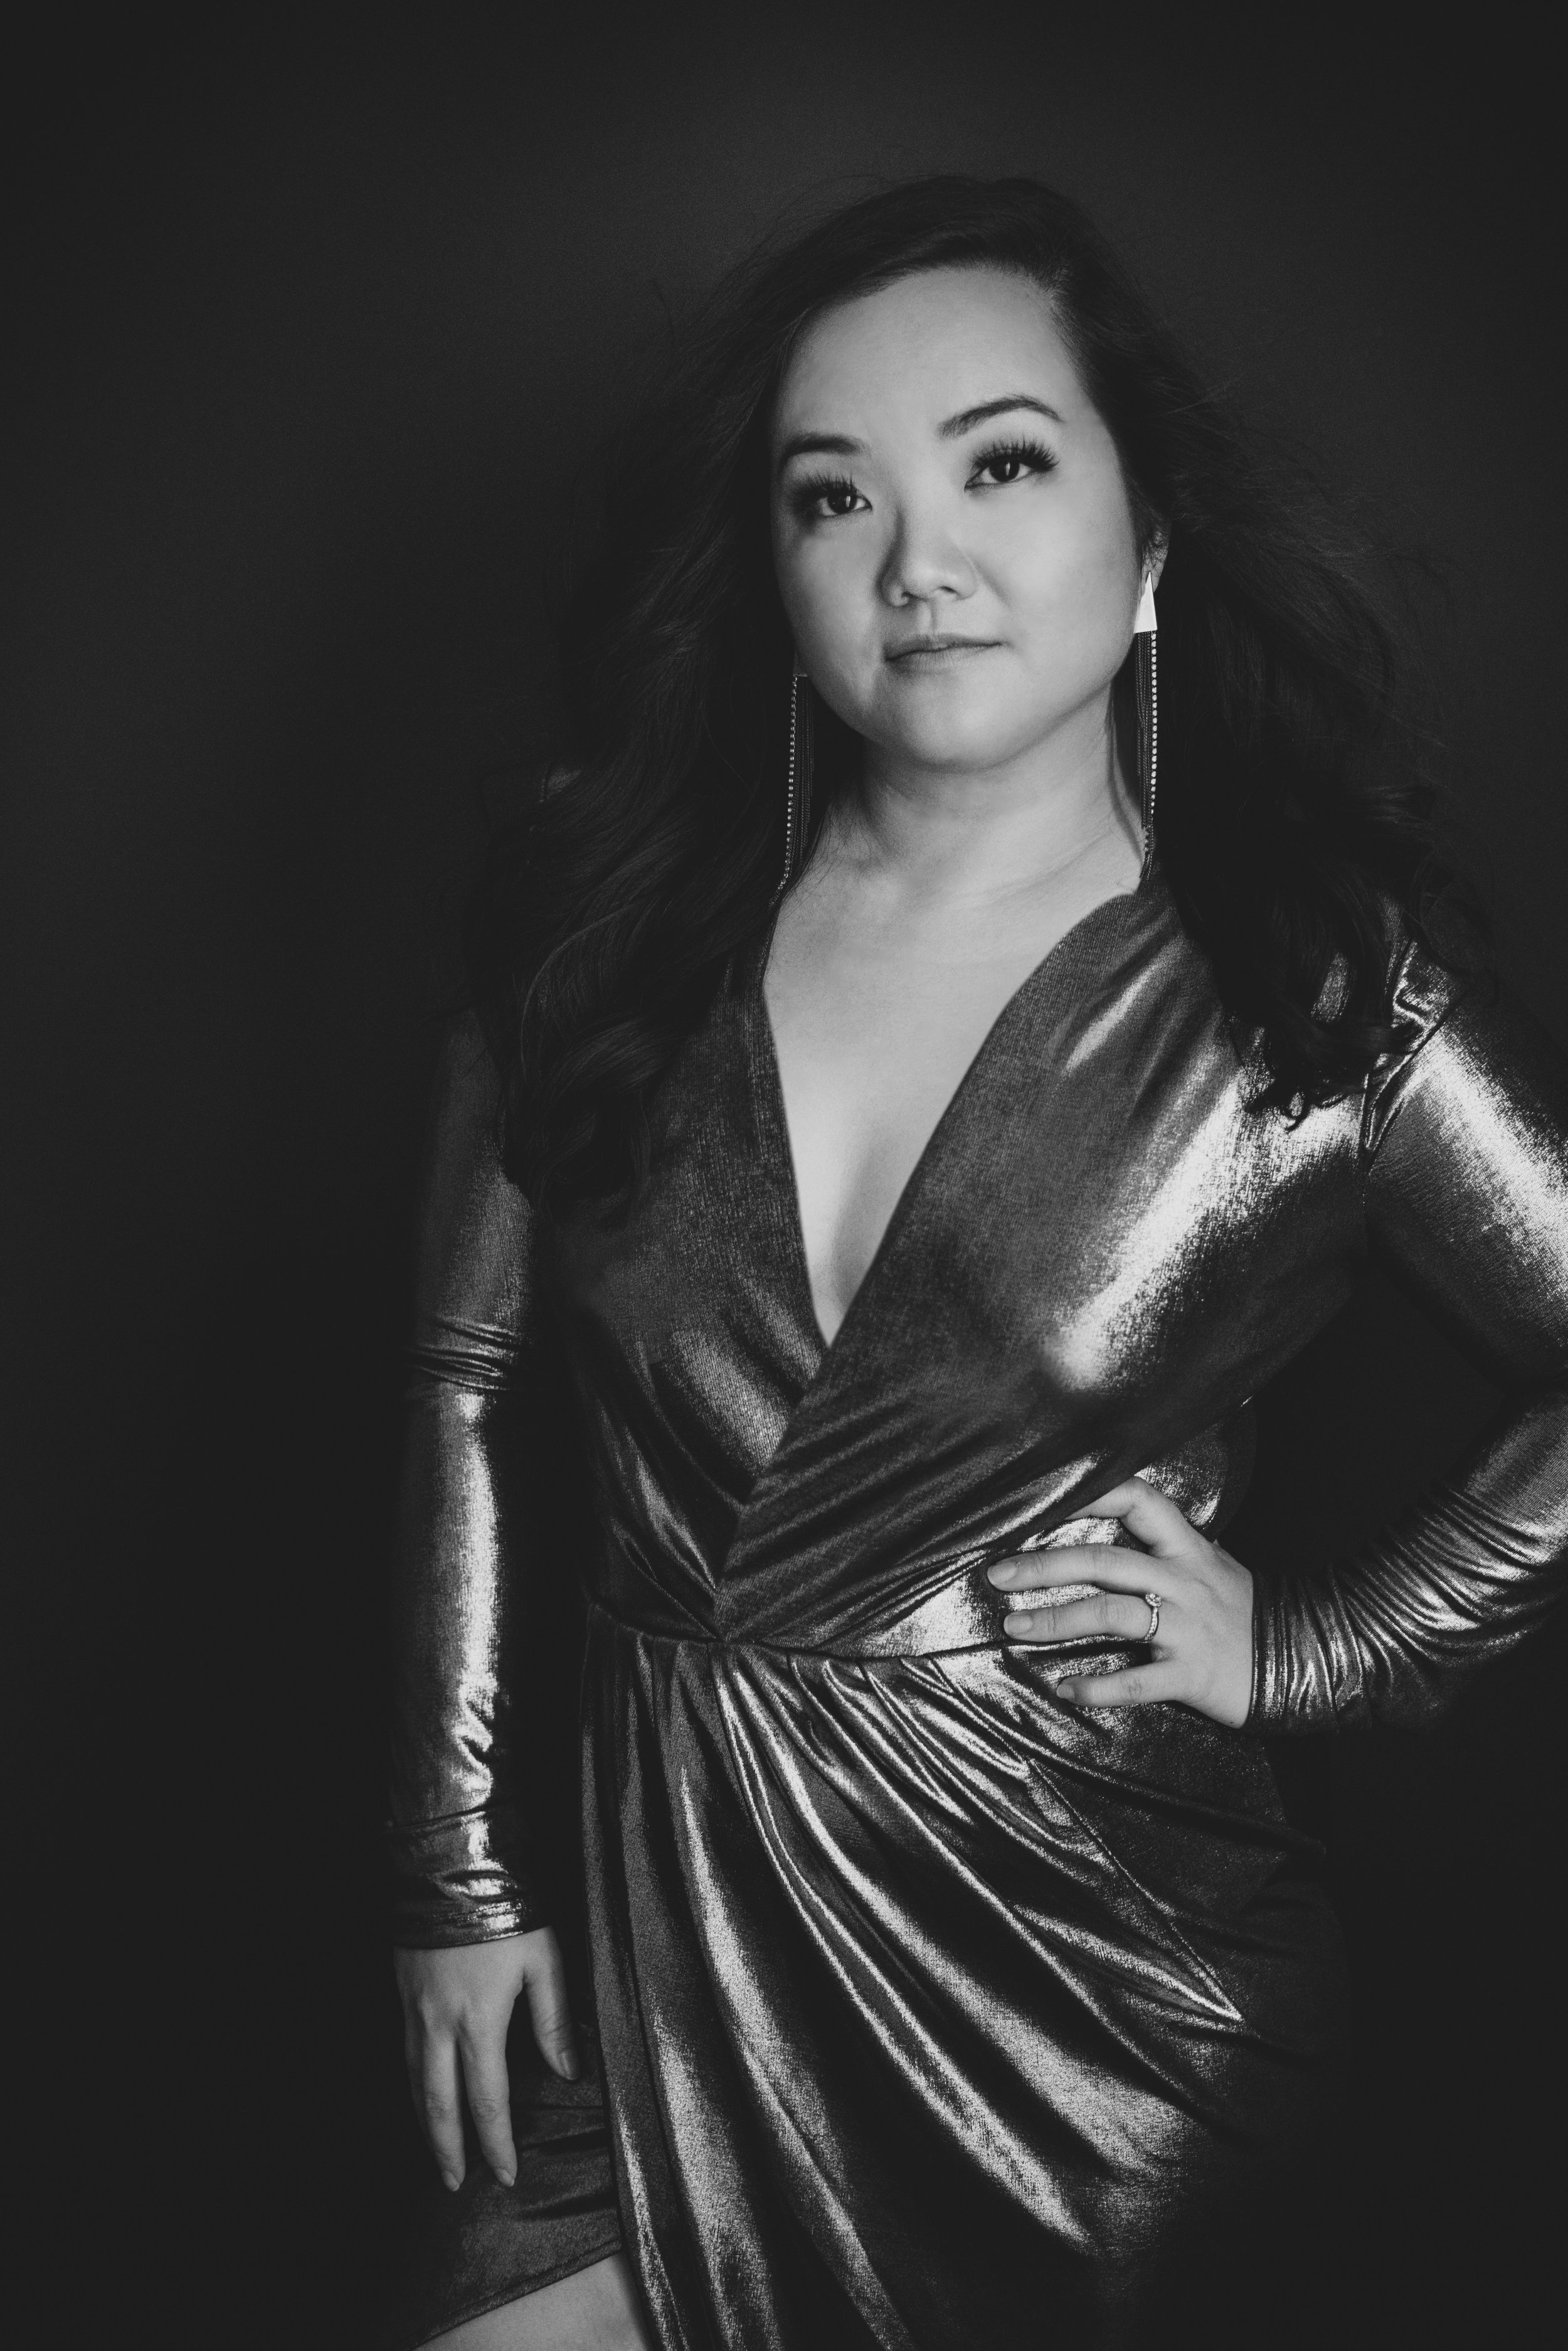 Paula Nguyen Luu - CEO, Founder and Photographer and Music InstructorPaula N. Luu is an award winning photographer whose work achieves a simple concept, to bring forth the best version of a person.